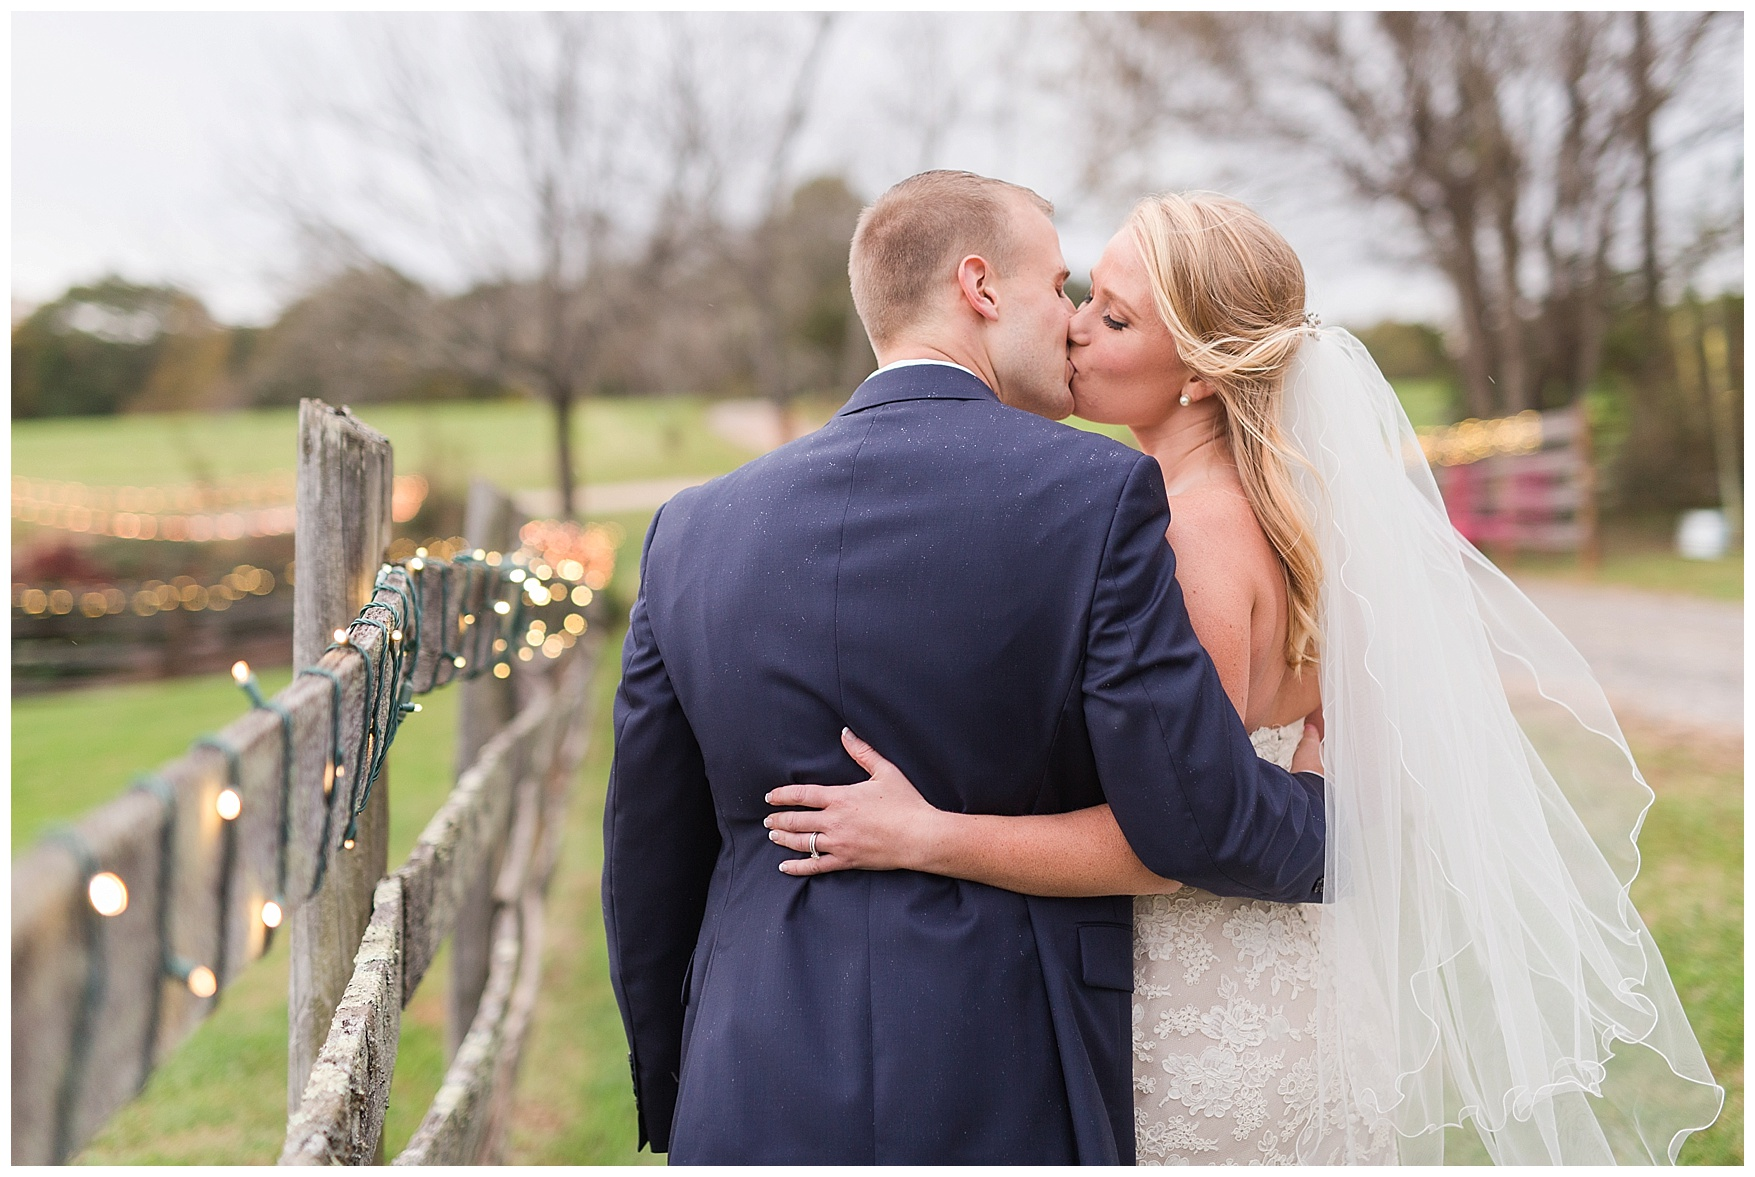 Sorella Farms Wedding in Lynchburg, VA || Sorella Farm Wedding in Evington, VA || Charlottesville VA Wedding